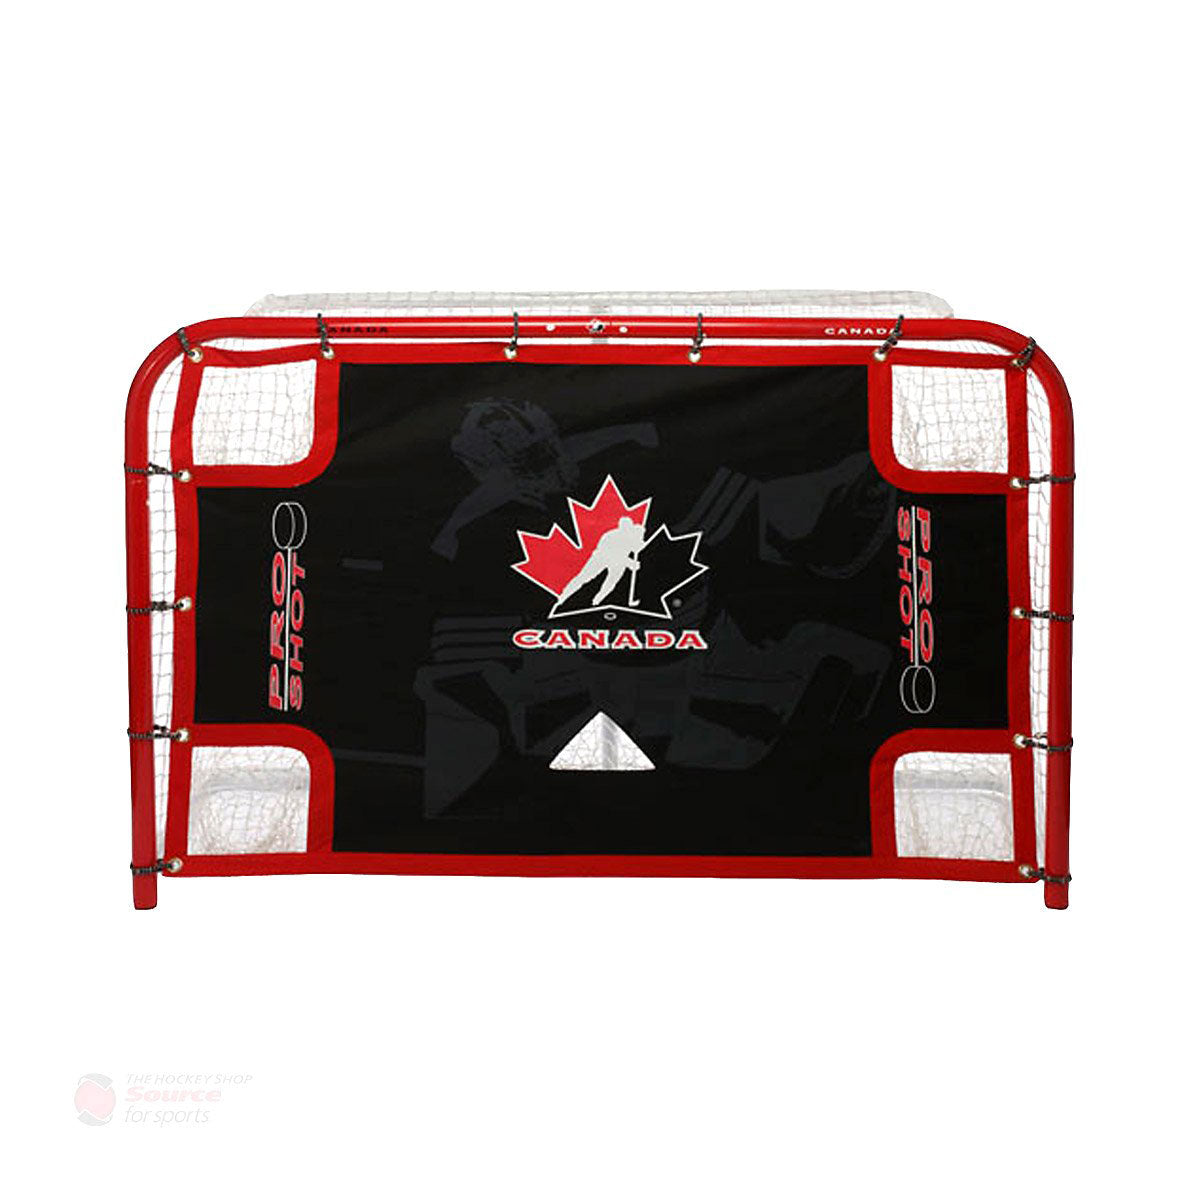 Team Canada Pro Shot Shooter Tutor